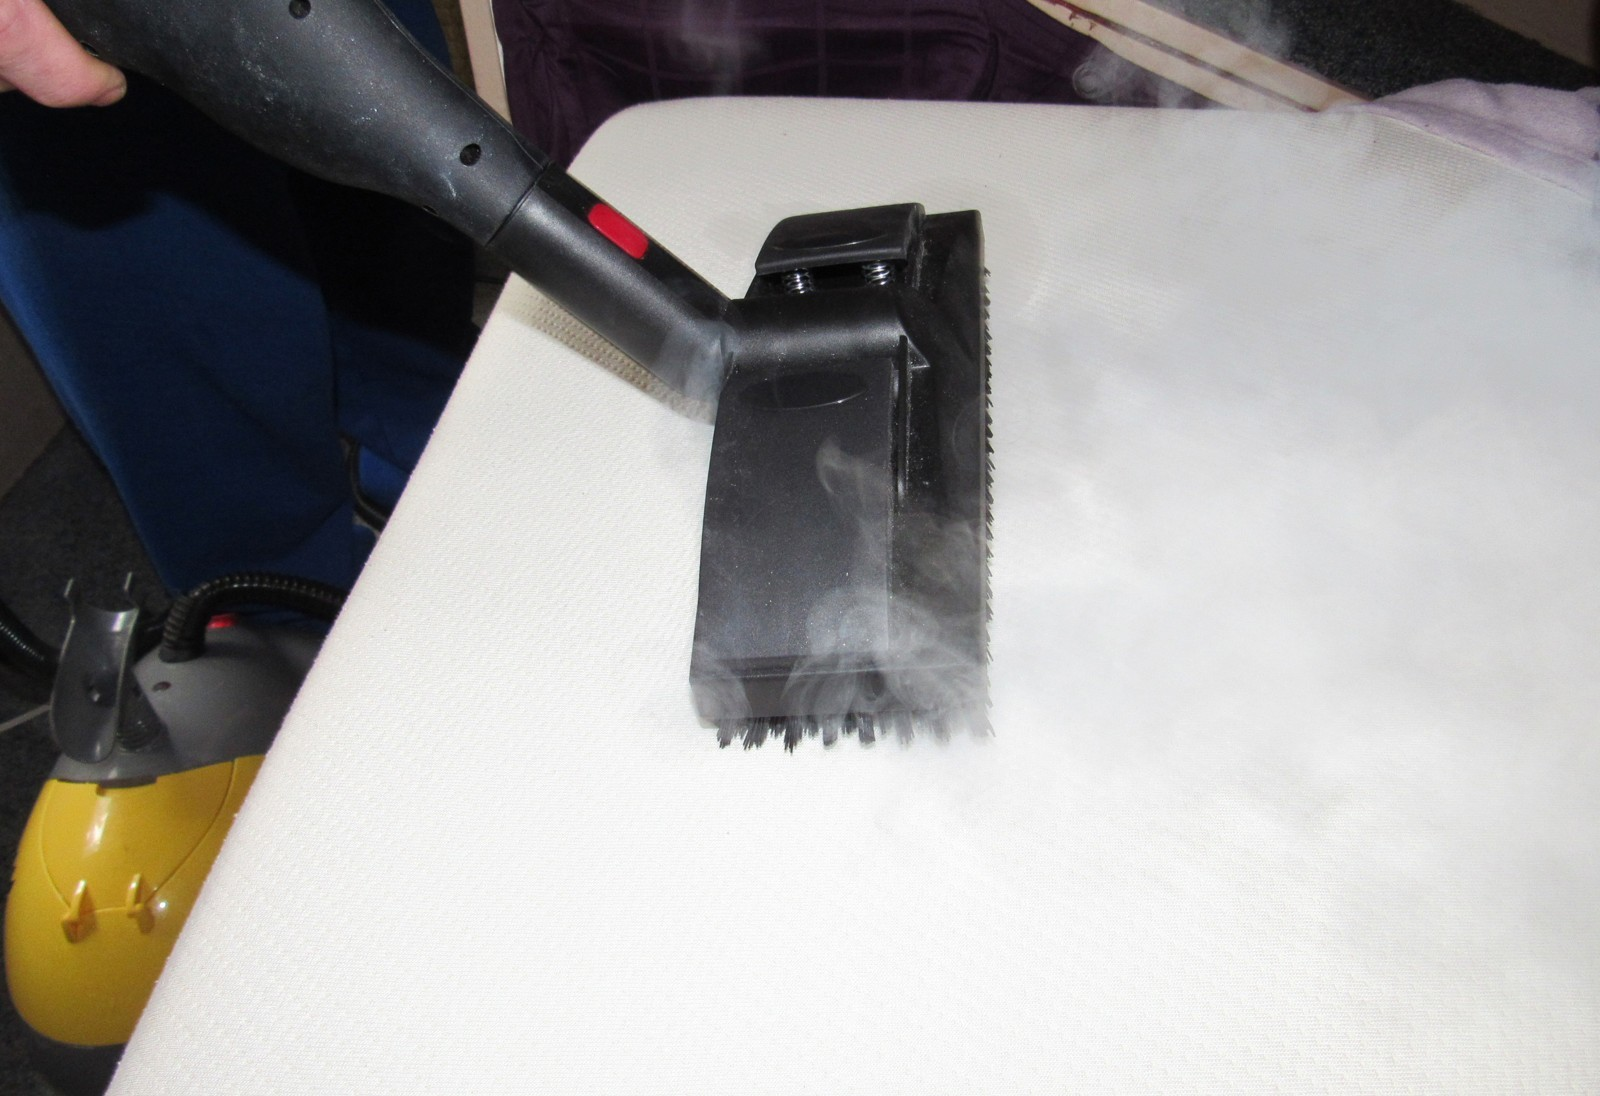 The Best Ways To Use A Steam Cleaner